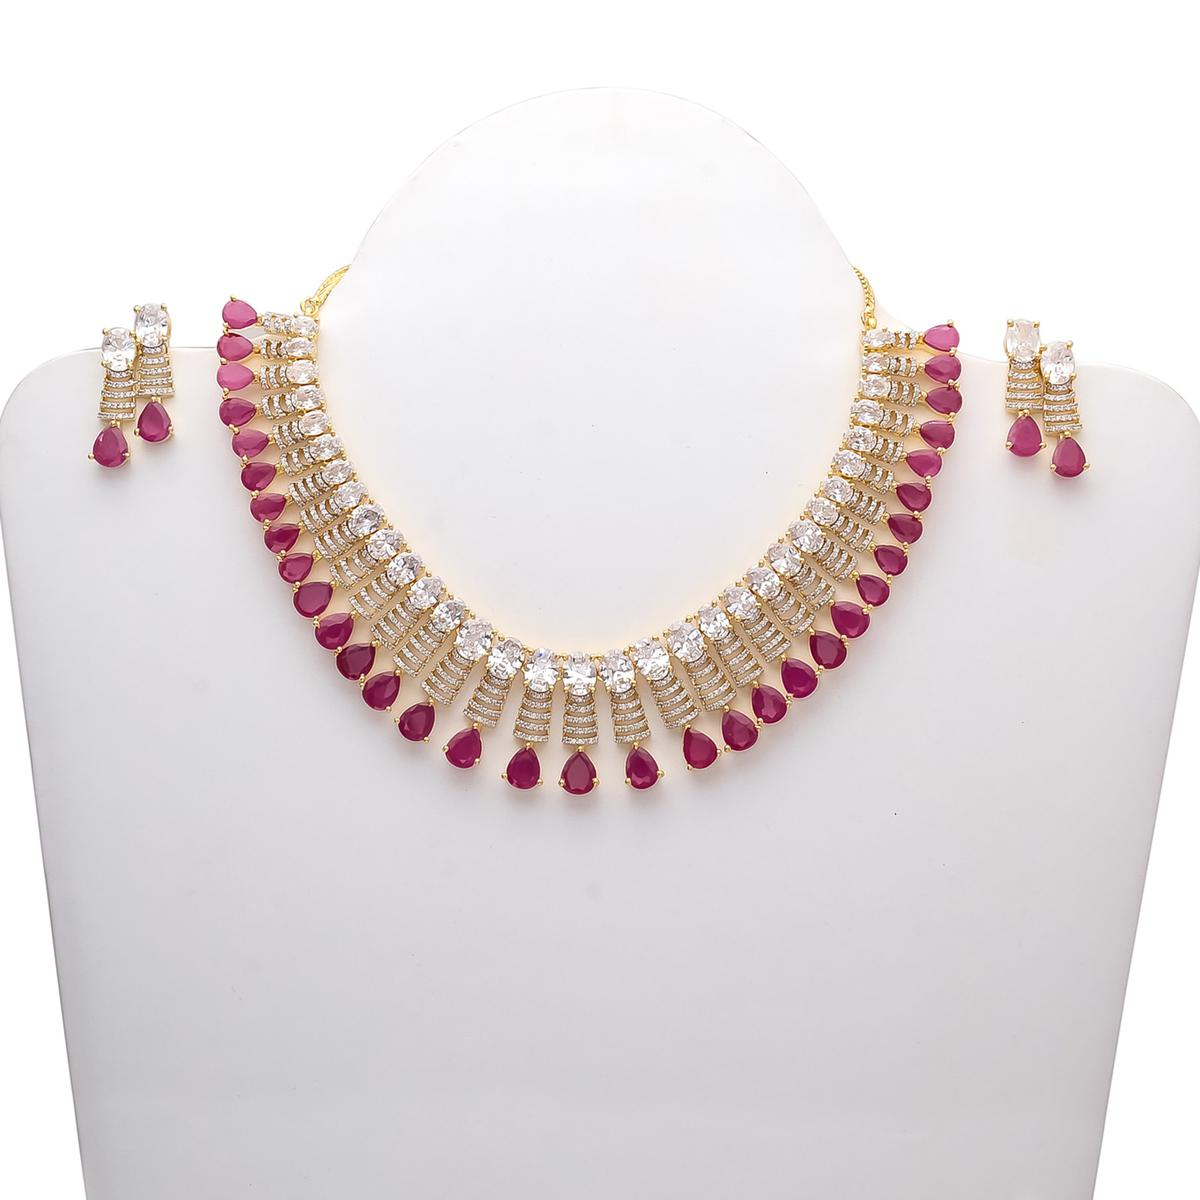 Buy Blissful Designer American Diamond And Red Stone Necklace Set For Womens Online India Best Prices Reviews Peachmode